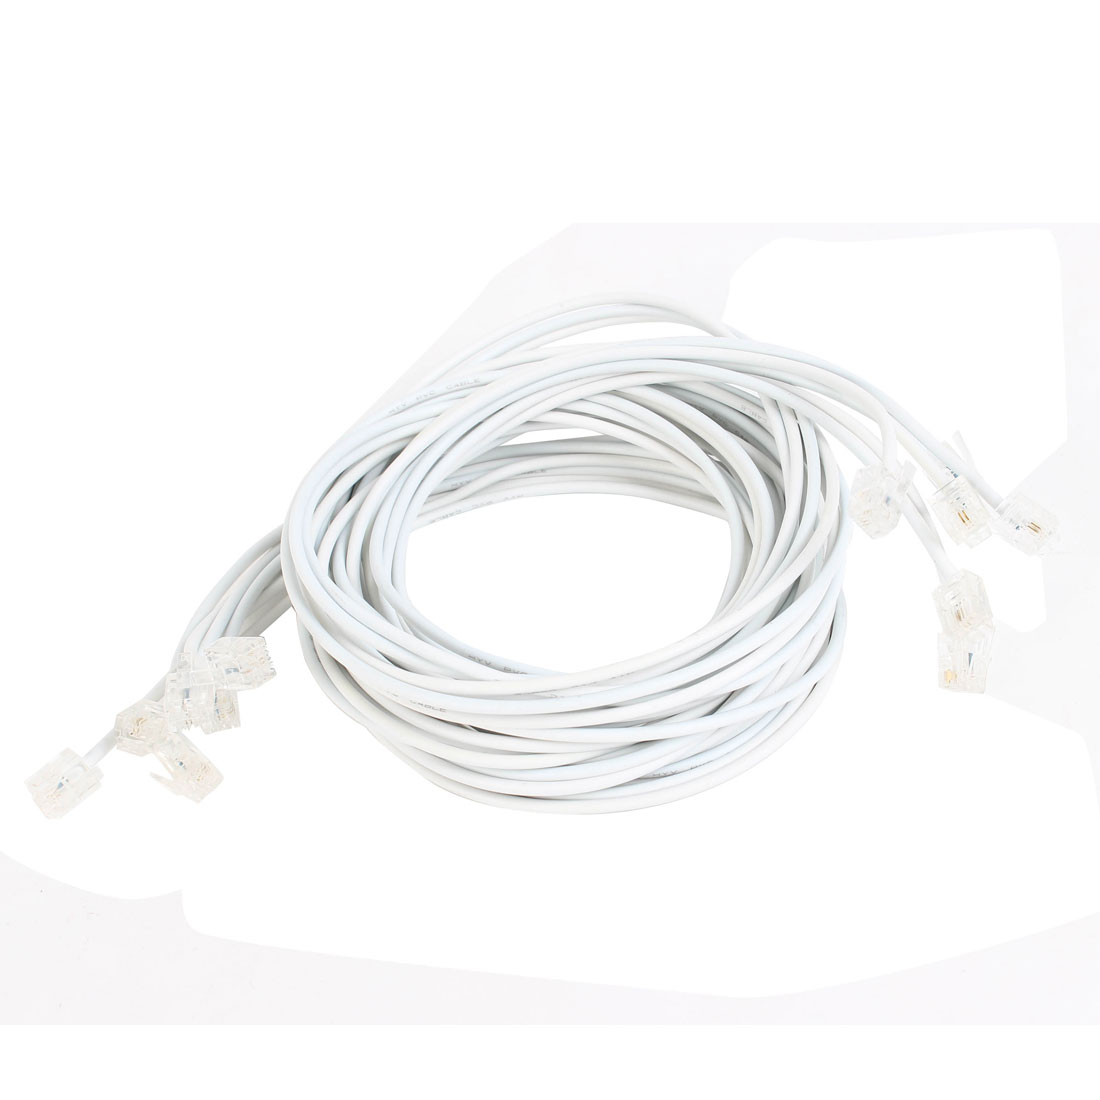 9 Pcs Telephone Line Cord White 6P4C RJ11 to 6P4C RJ11 2M